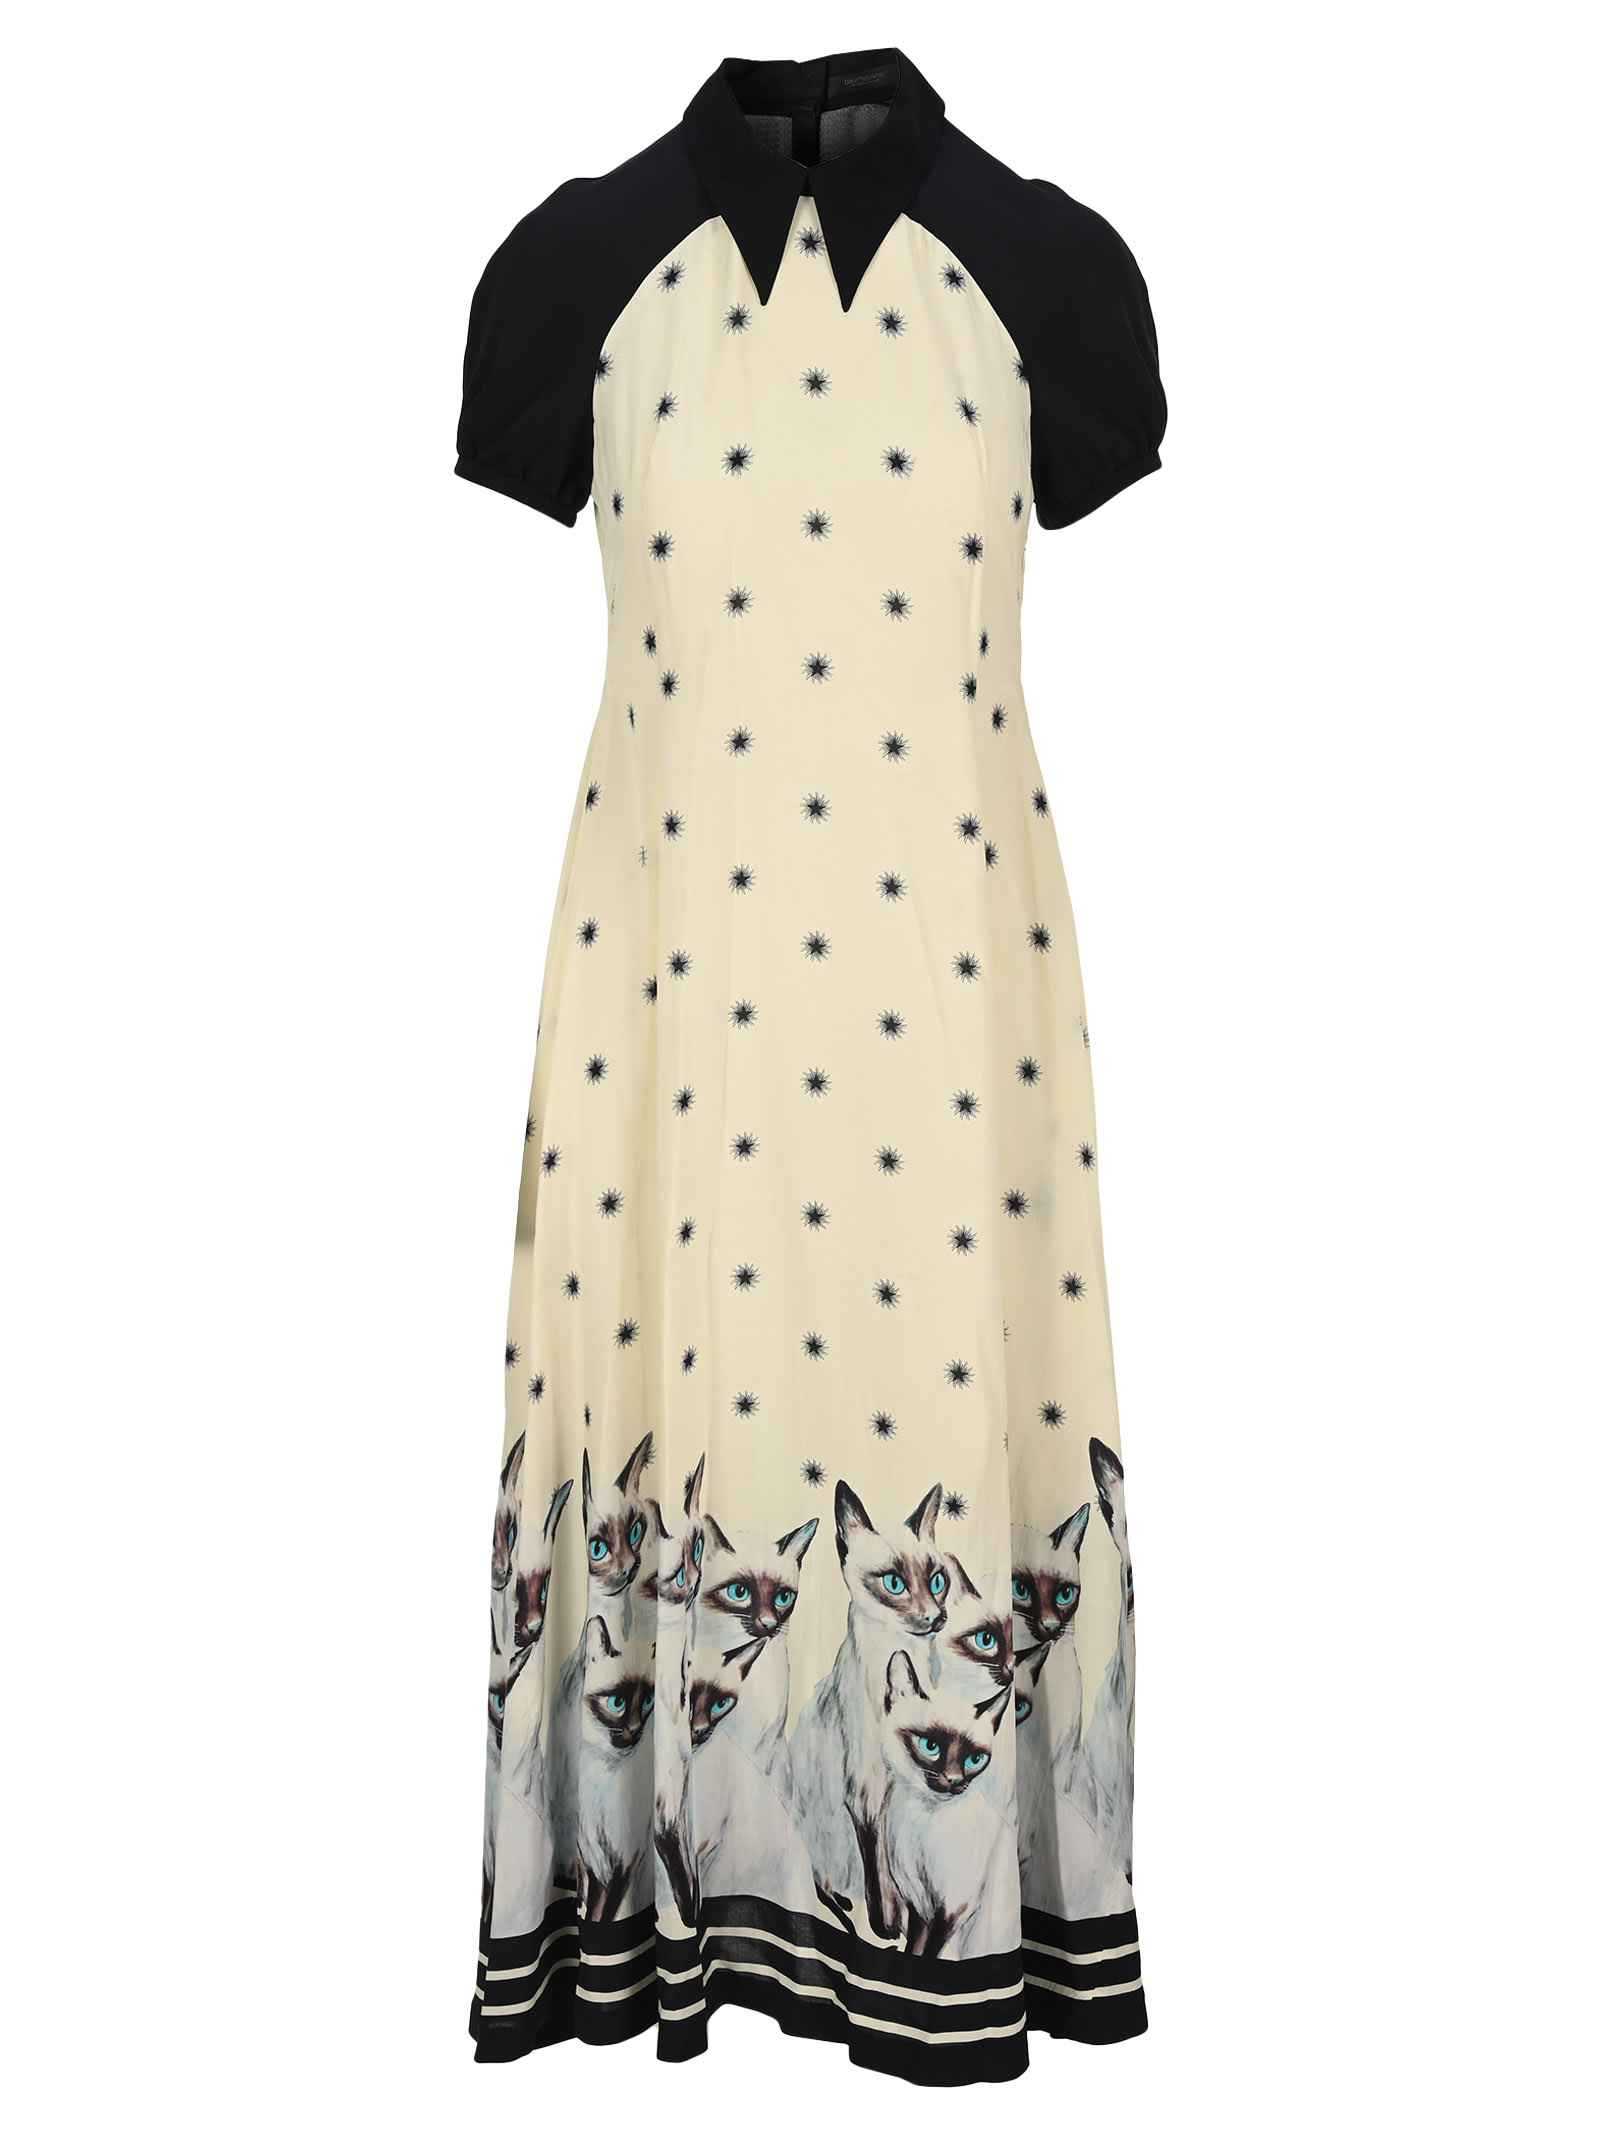 Undercover UNDERCOVER PAINTED CAT DRESS